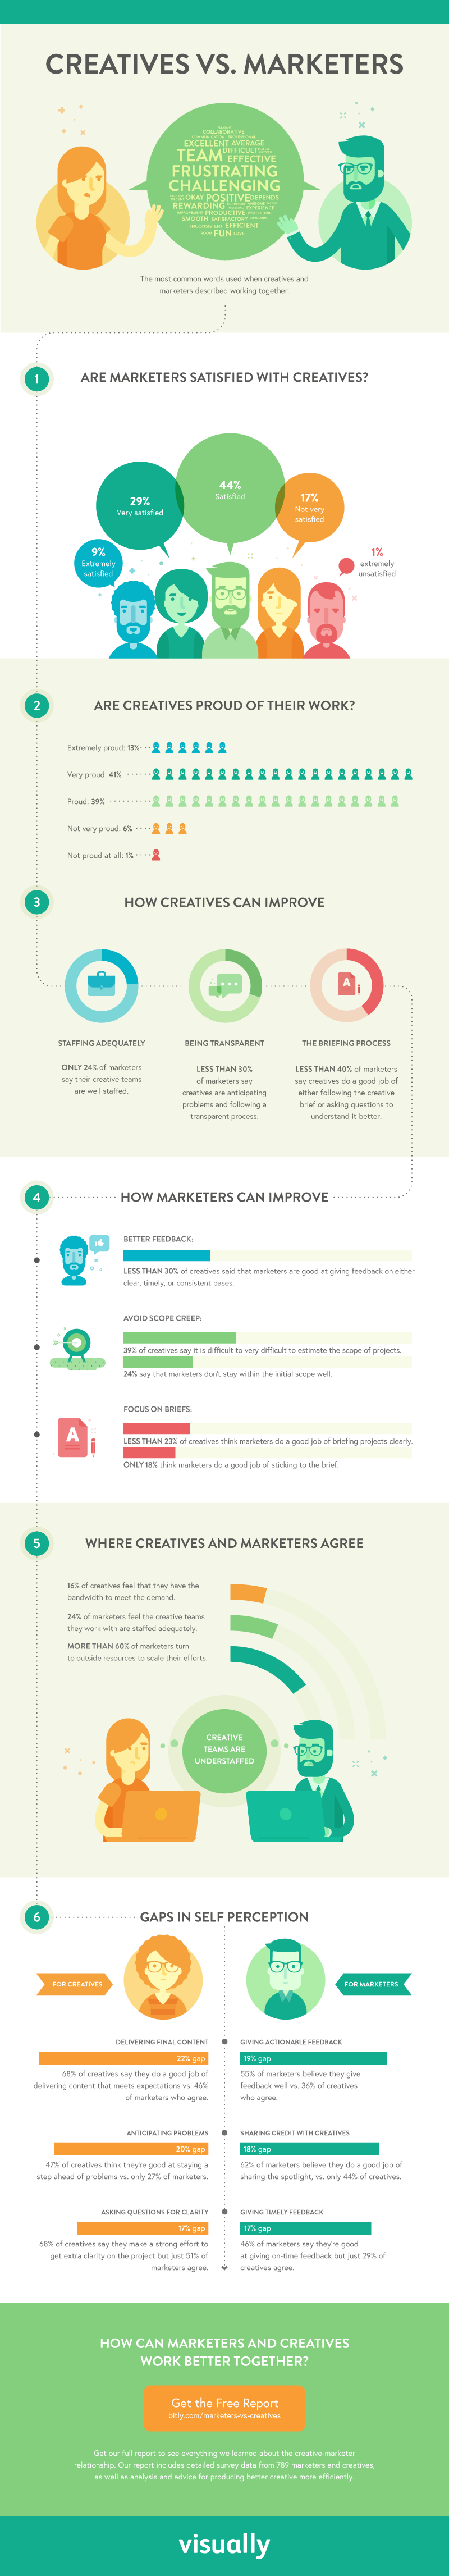 creatives-and-marketers-infographic.png